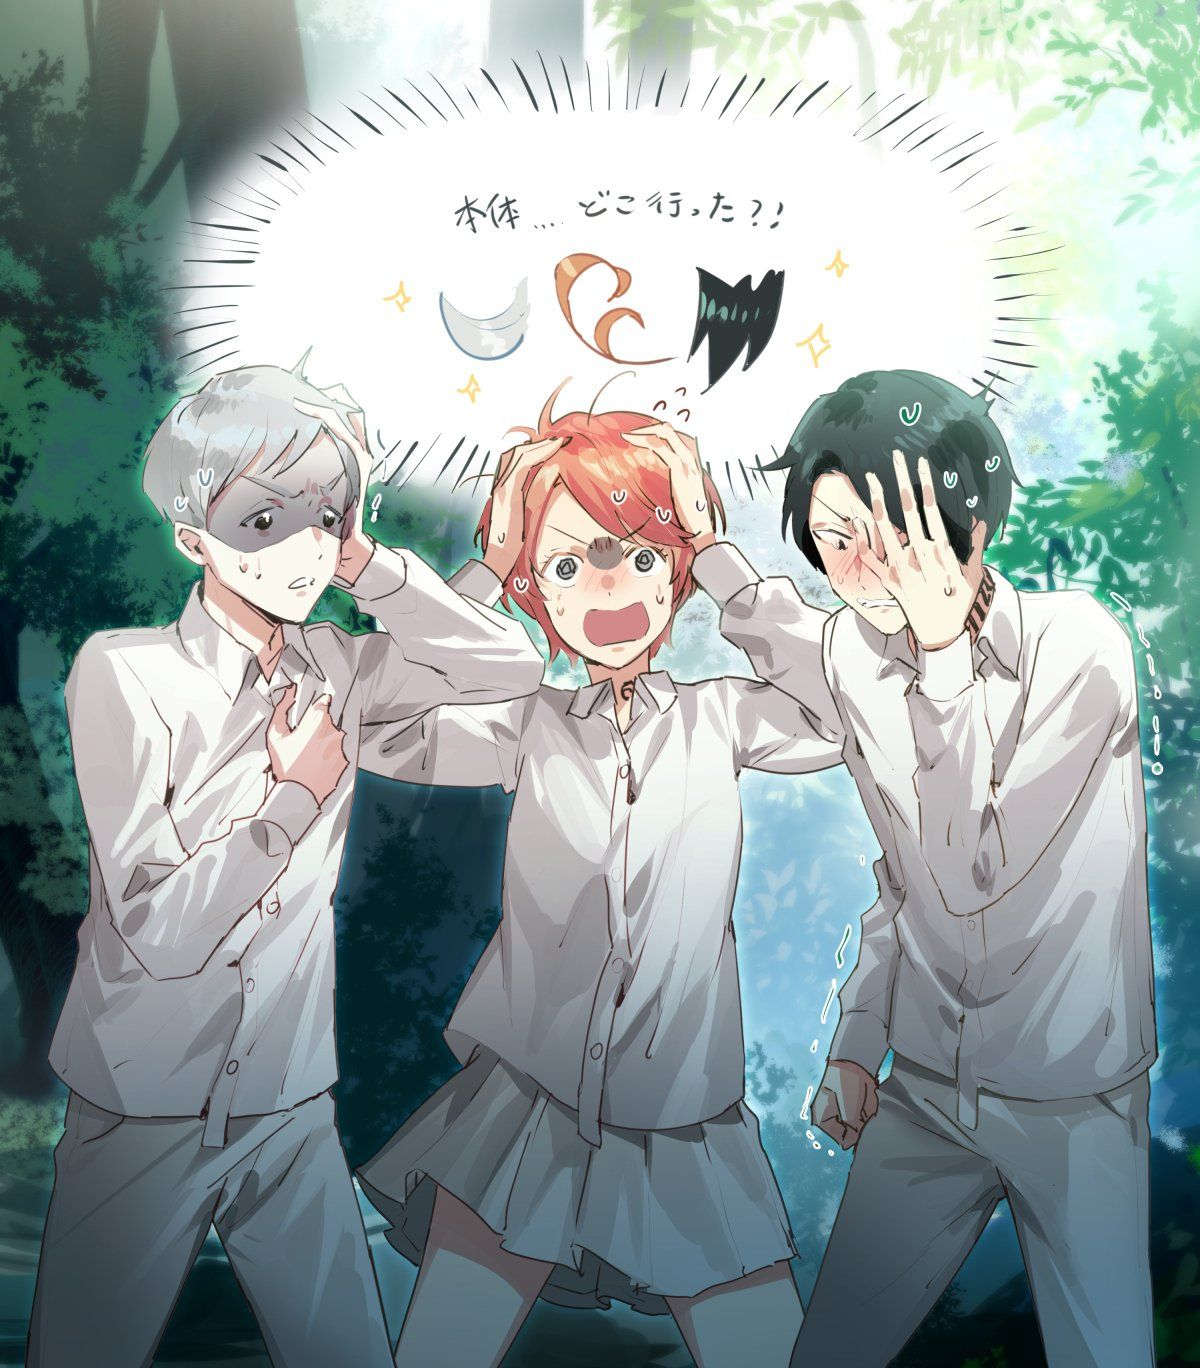 Pin by ×Hot Milk× on The Promised Neverland in 2020